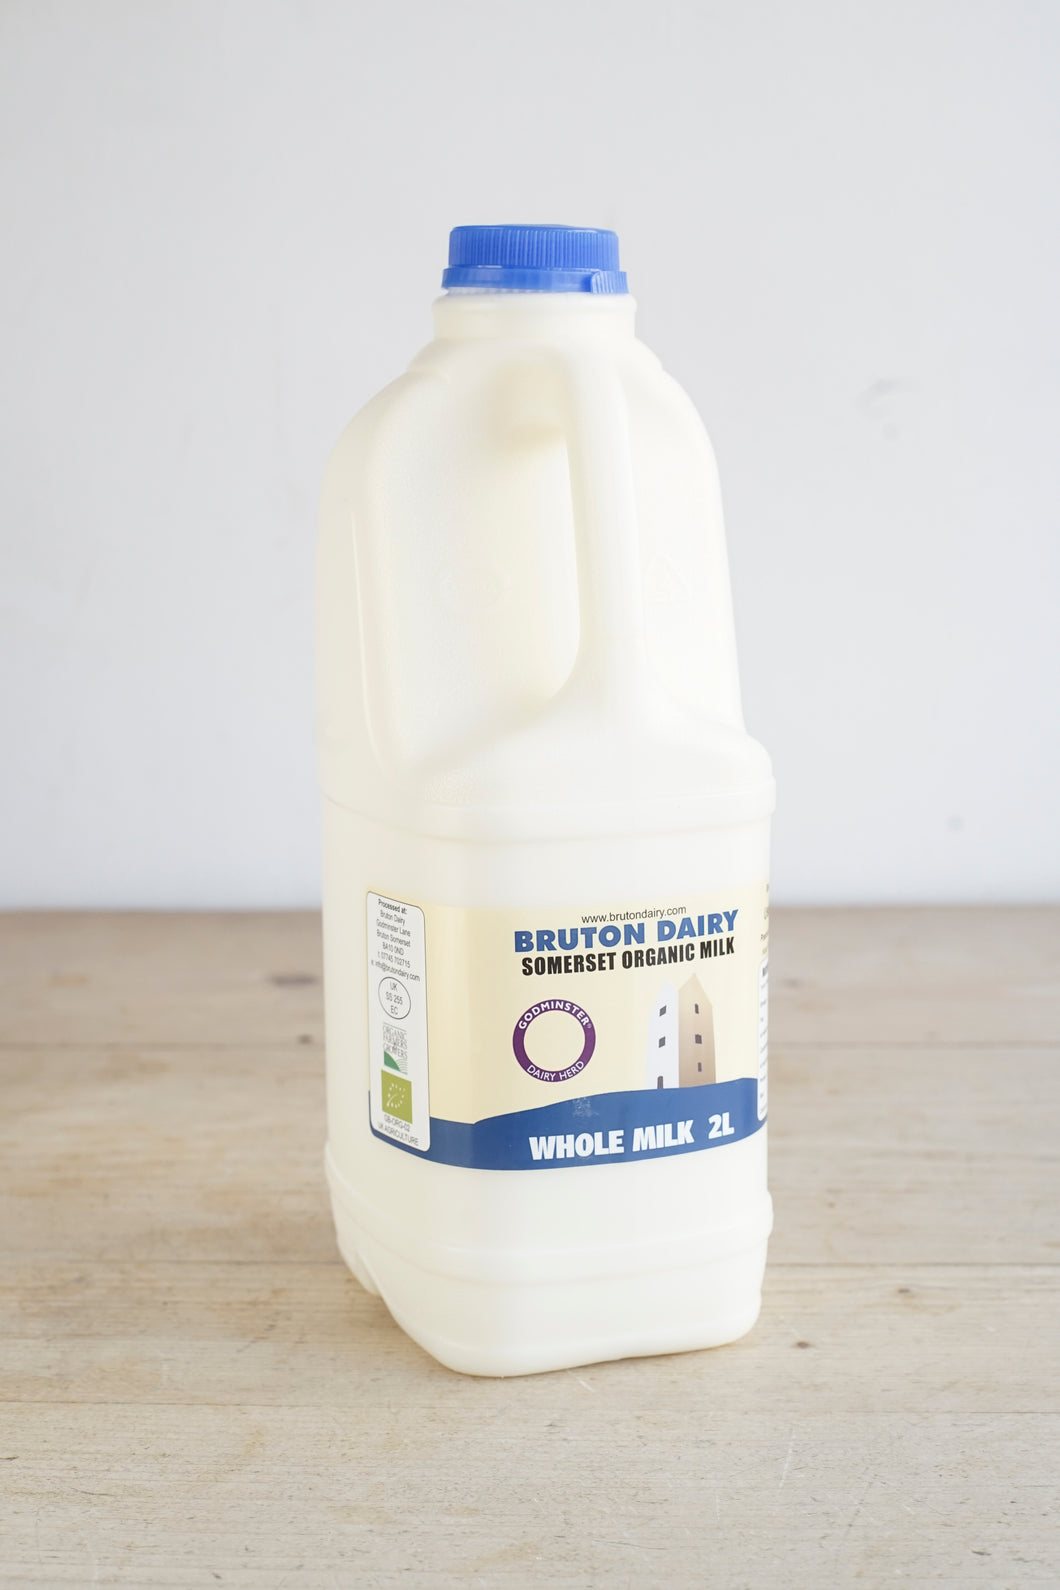 Bruton Dairy Organic Whole Milk